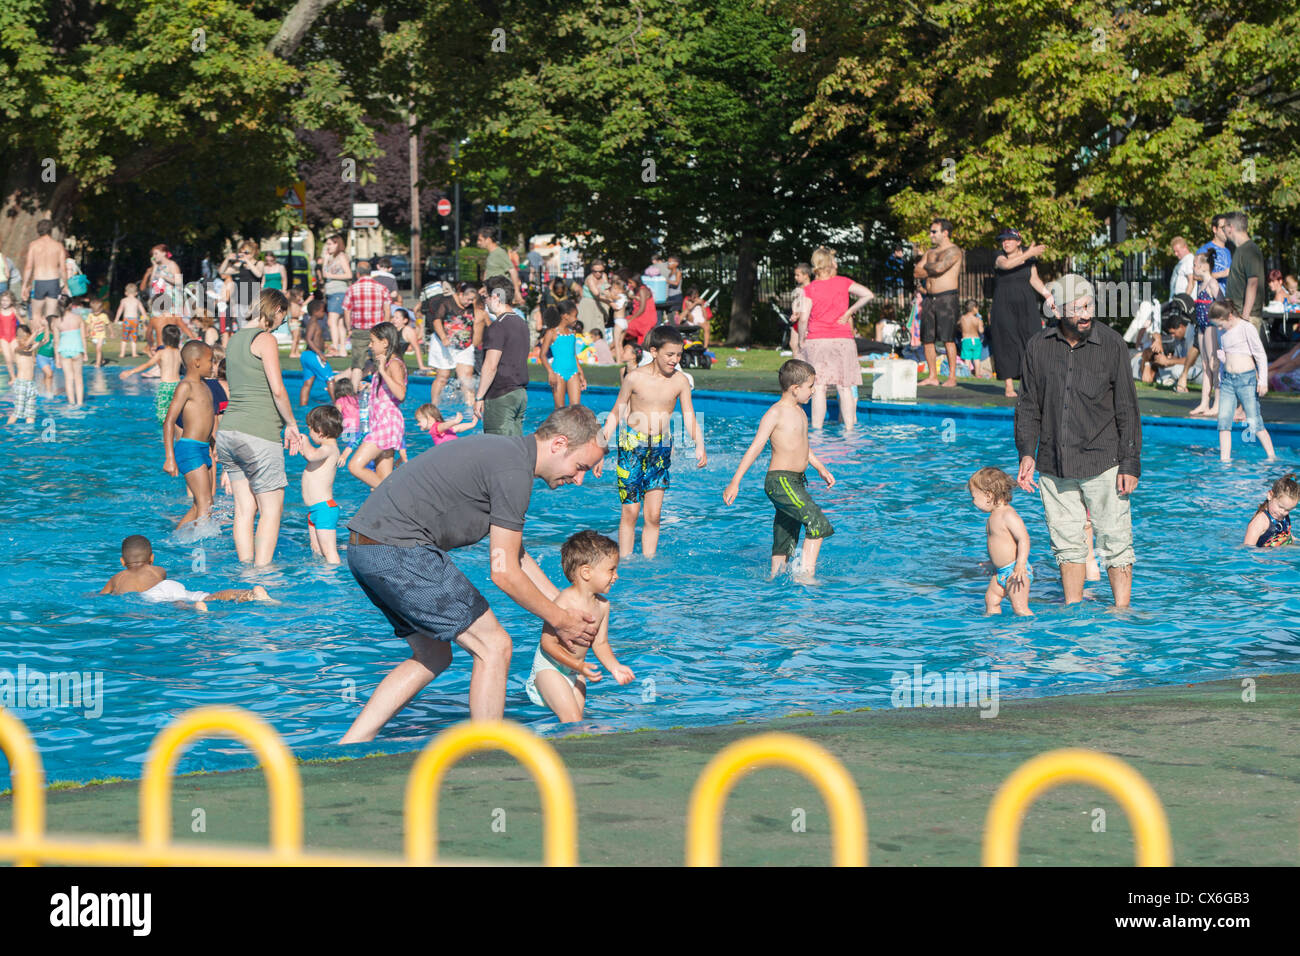 Toddlers Paddling Pool At Clissold Park London England Stock Photo Royalty Free Image